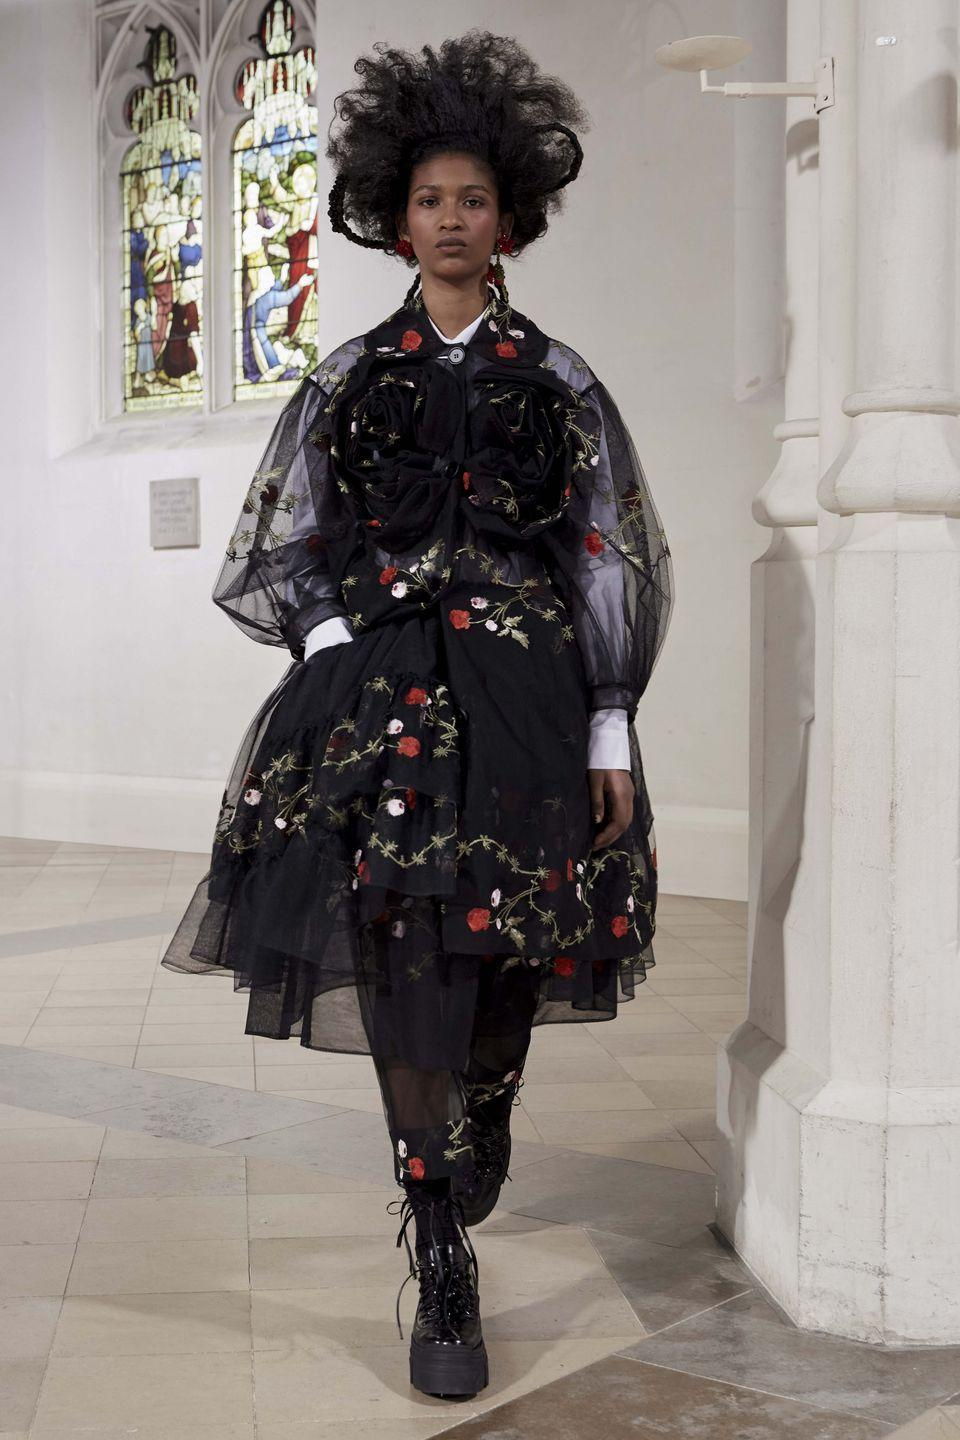 "<p>""The winter roses. Clarity and identity, precise, stronger, signature,"" were some of the words Simone Rocha used to describe the inspiration behind her autumn/winter 2021 collection, which was presented via an audience-free catwalk show this afternoon in London. </p><p>The designer's trademark embroidery, tulle and feminine shirting were paired with black leather and lace in a collection that the designer described in her show notes as her take on ""thinking of clothes in a protective and practical way"". Scroll down to see some highlights from the collection – <a href=""https://www.youtube.com/watch?v=5hLehVSTXnQ&feature=youtu.be"" rel=""nofollow noopener"" target=""_blank"" data-ylk=""slk:and watch the beautiful show in full here"" class=""link rapid-noclick-resp"">and watch the beautiful show in full here</a>.</p>"